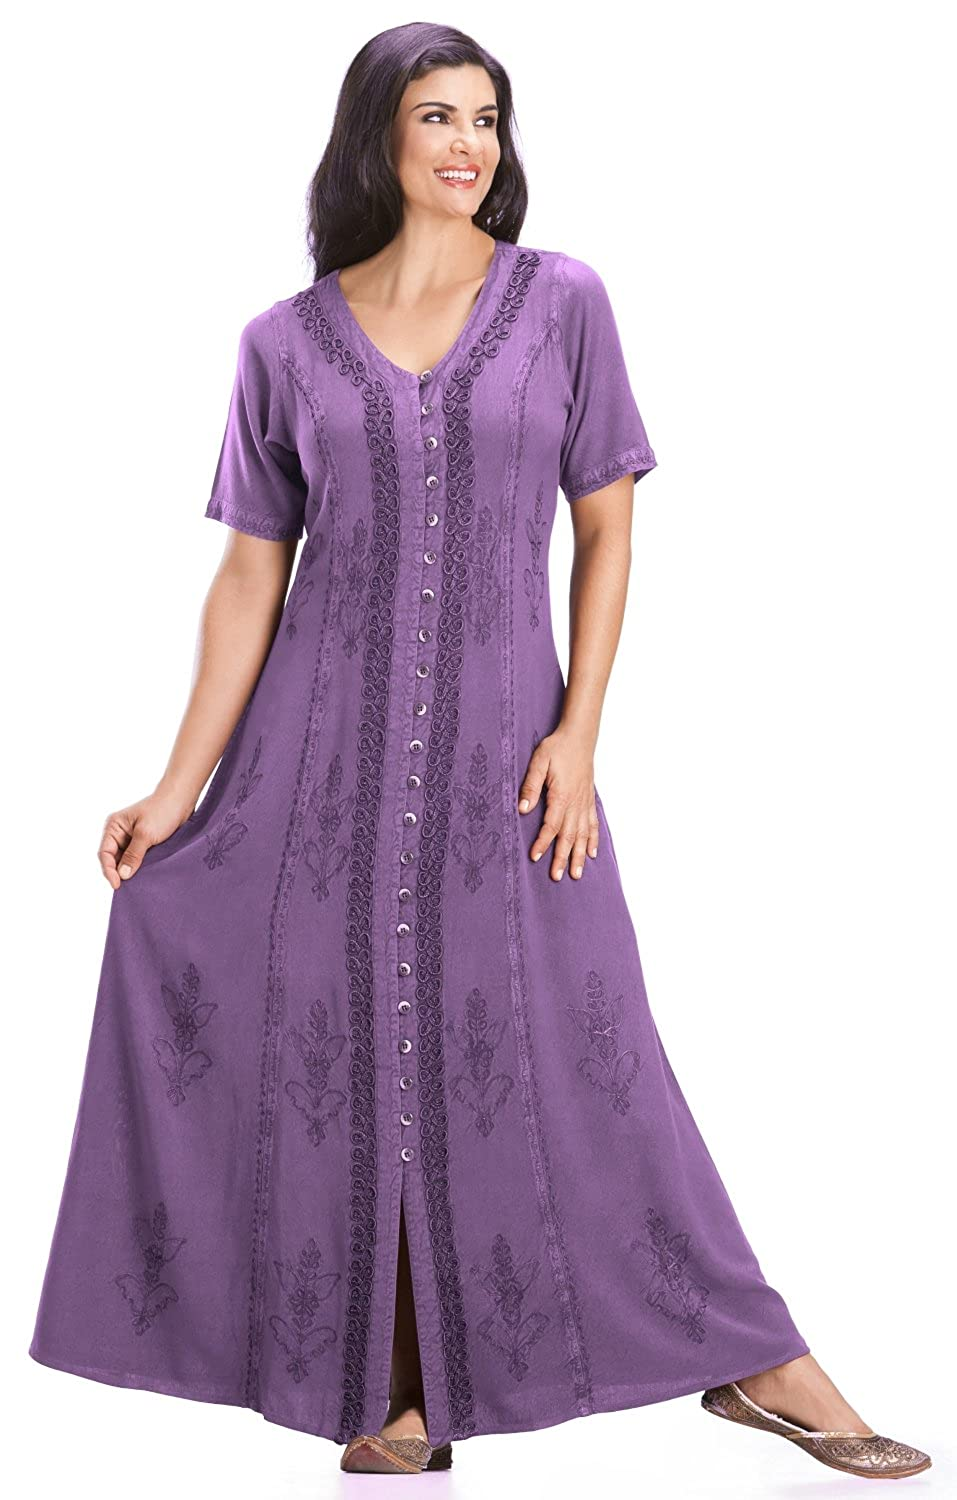 c2db0f25681 HolyClothing Eleanor Embroidered Button Front Dress - 4X-Large - Purple  Passion  Amazon.ca  Clothing   Accessories